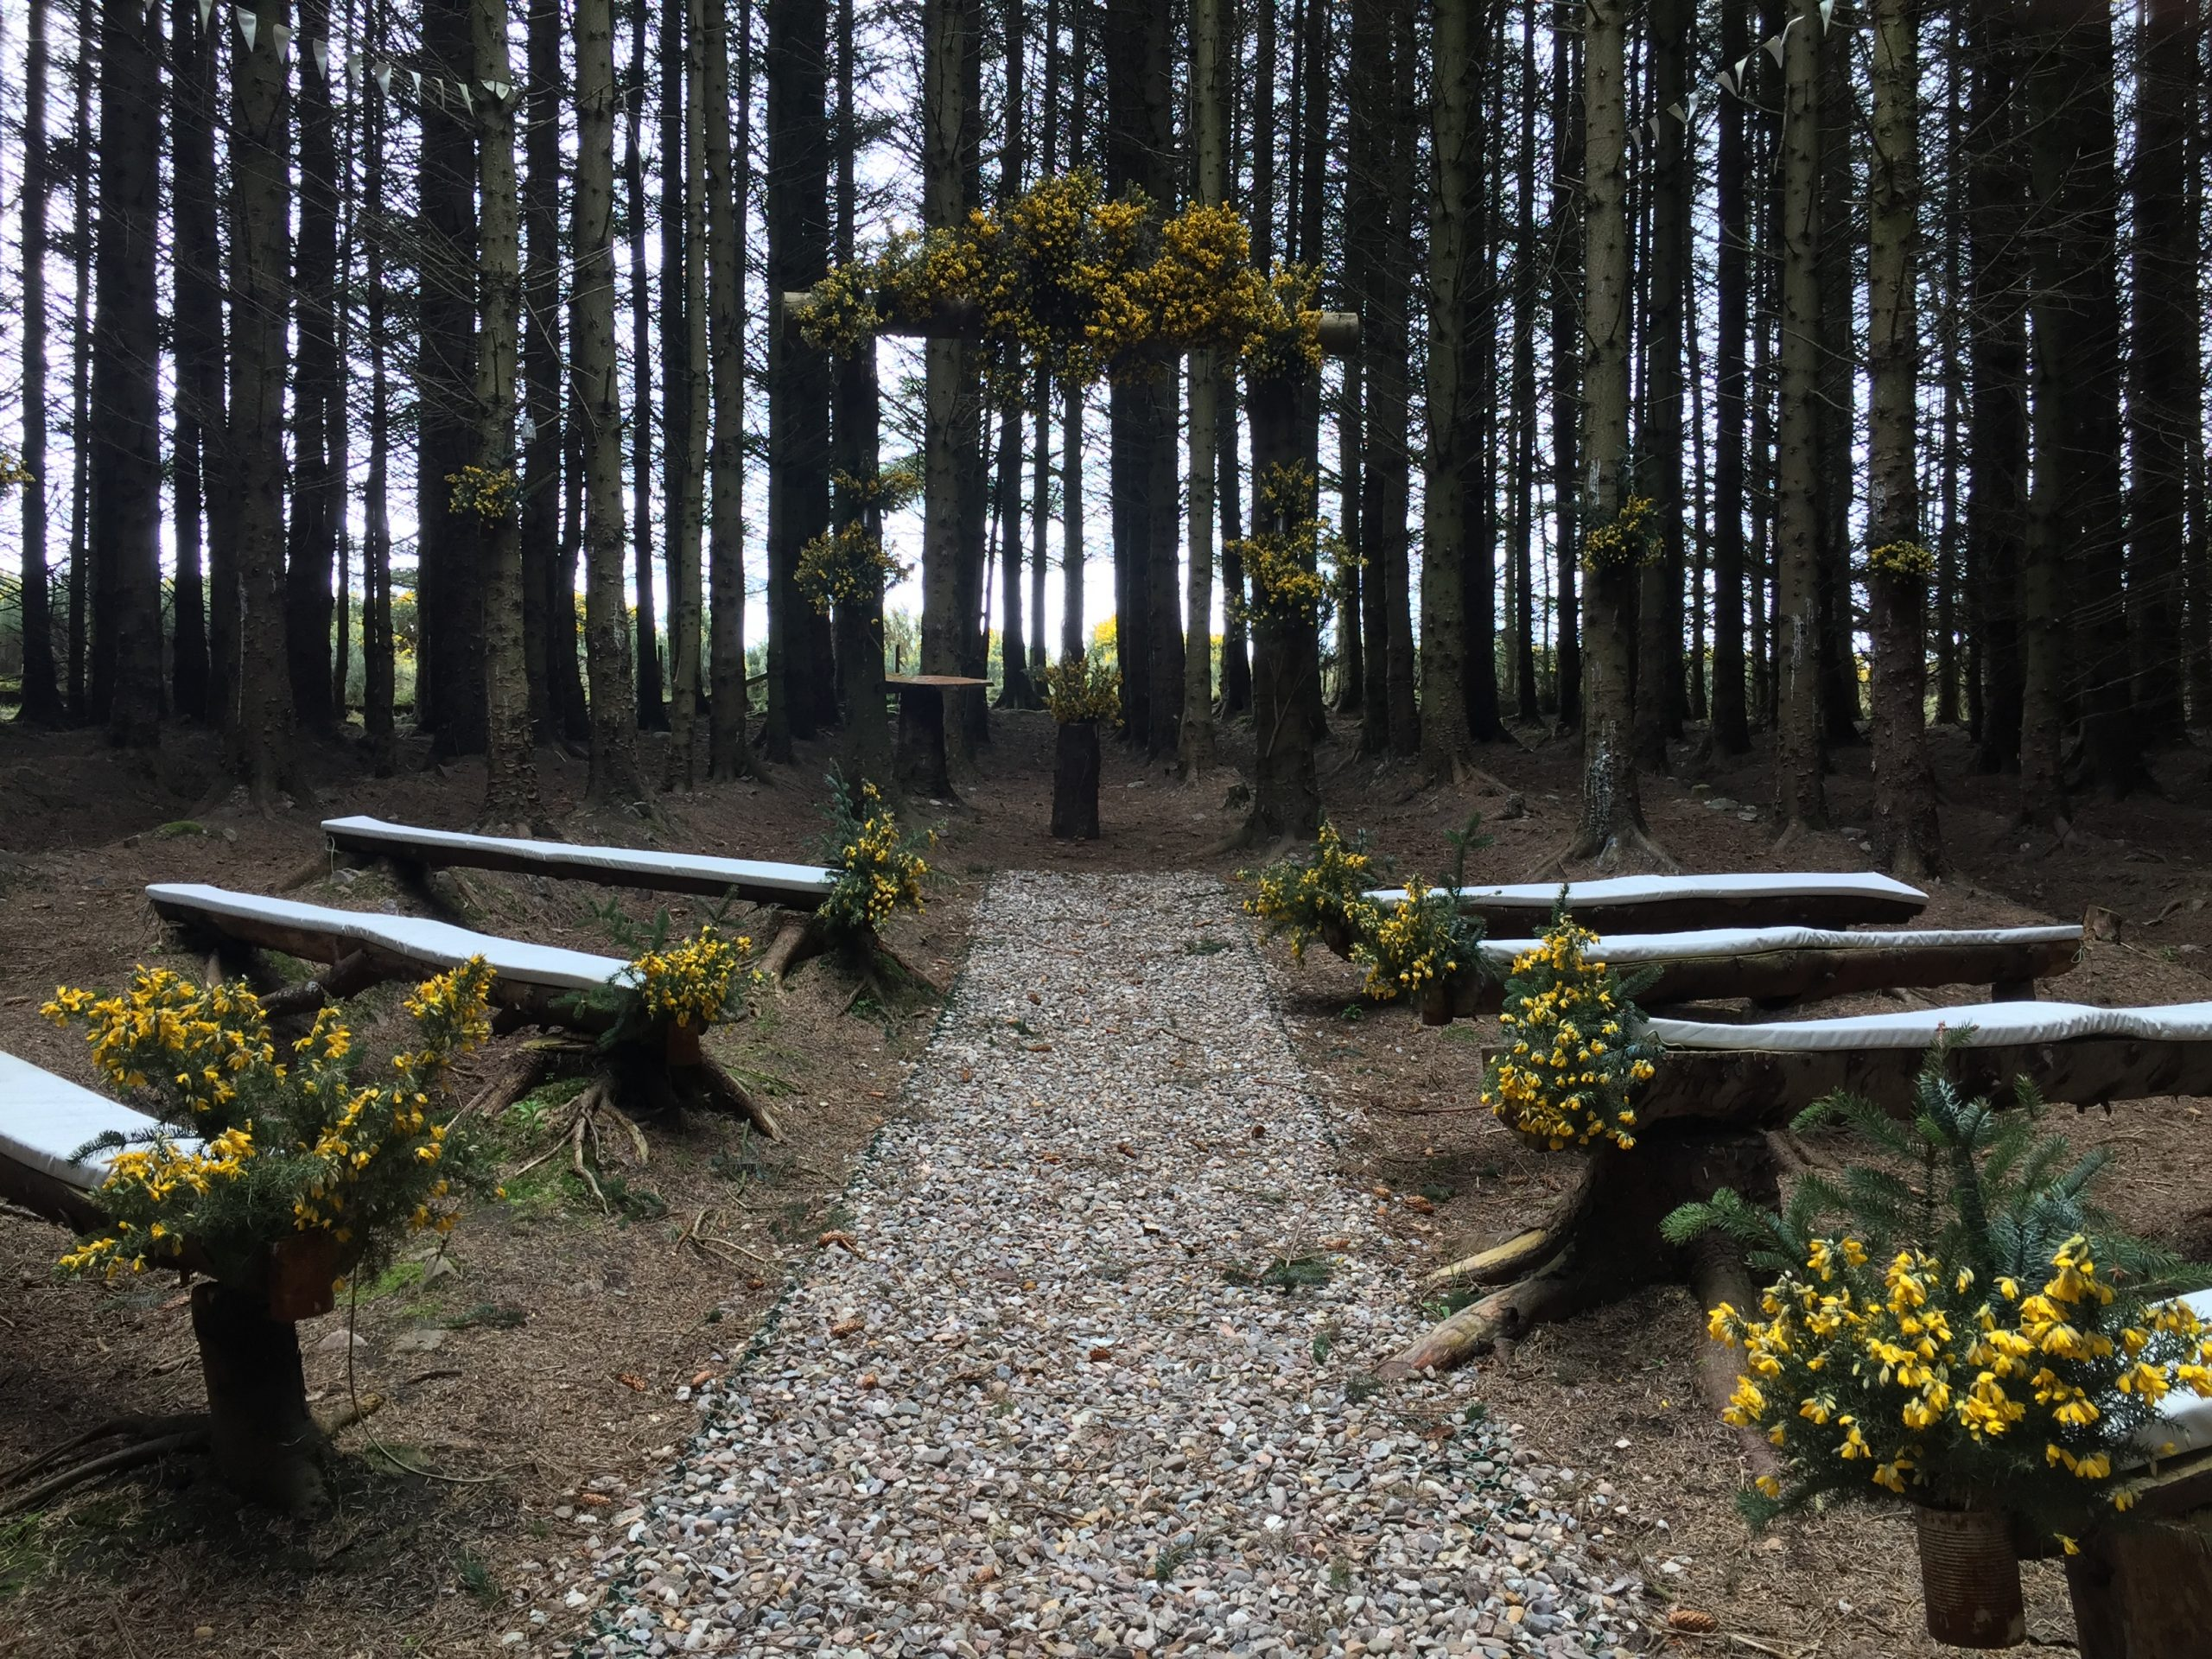 stunning woodland cathedral festooned with yellow flowers